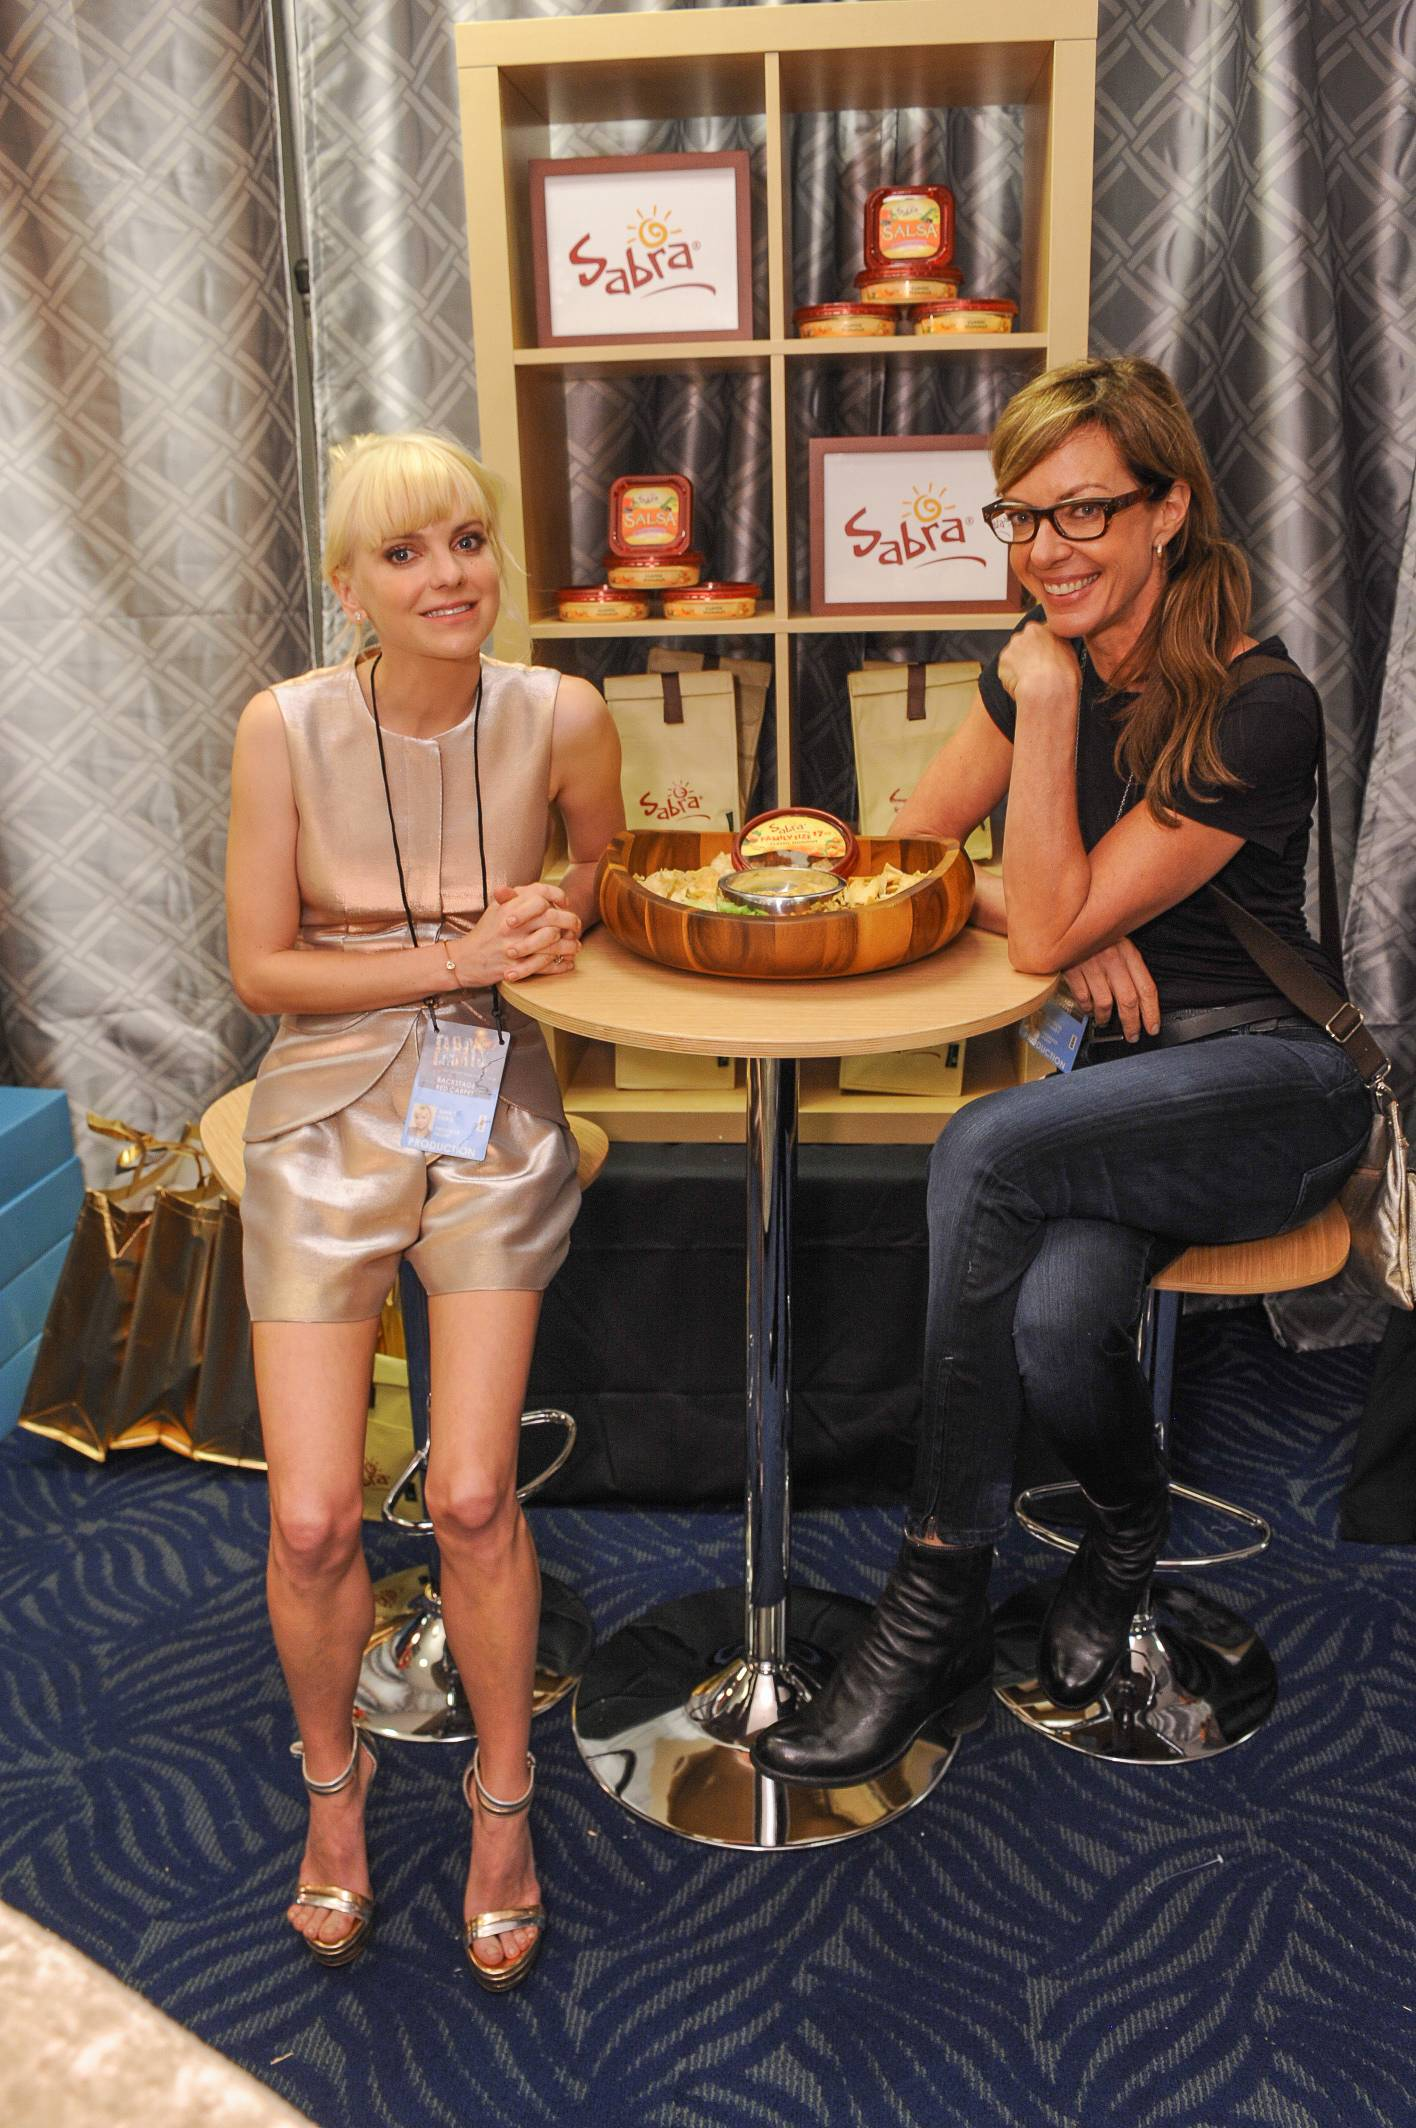 Anna Ferris and Allison Janney, co-stars in the new CBS sitcom Moms, at the 65th Emmy Awards Giving Suite by Backstage Creations Sept. 21 in L.A. (Adrian Sidney/Invision)